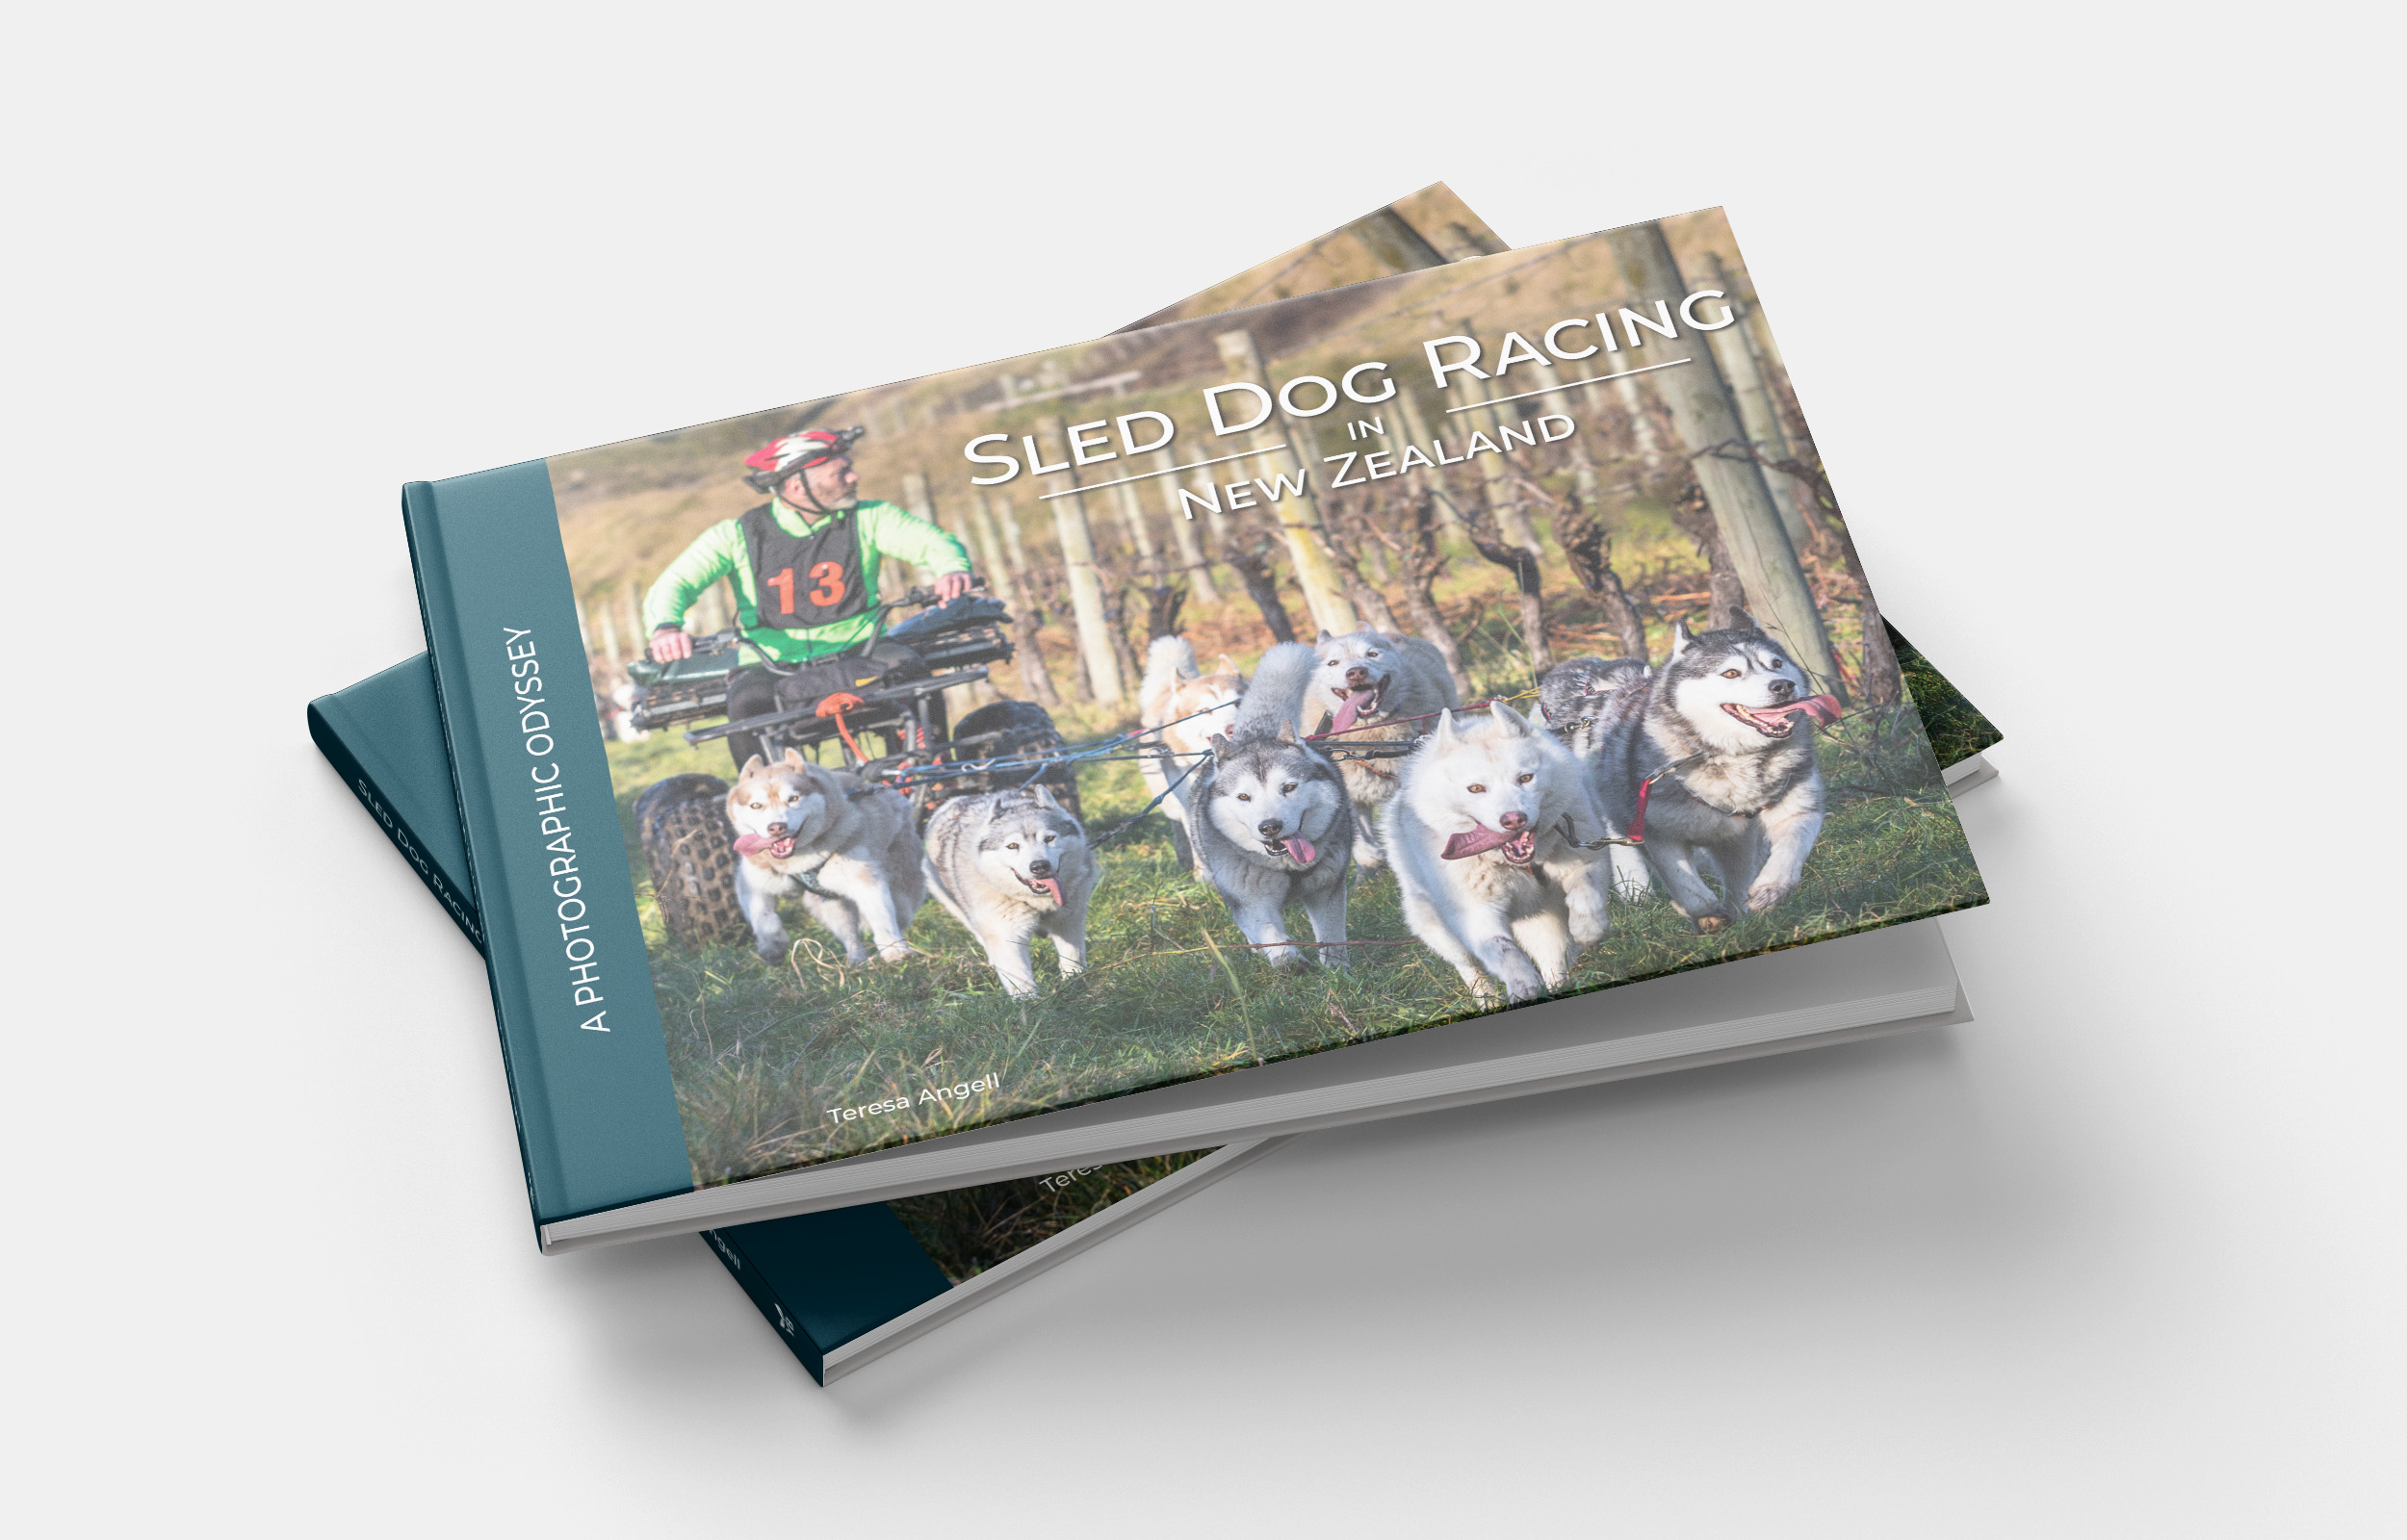 Sled Dog Racing Book Cover